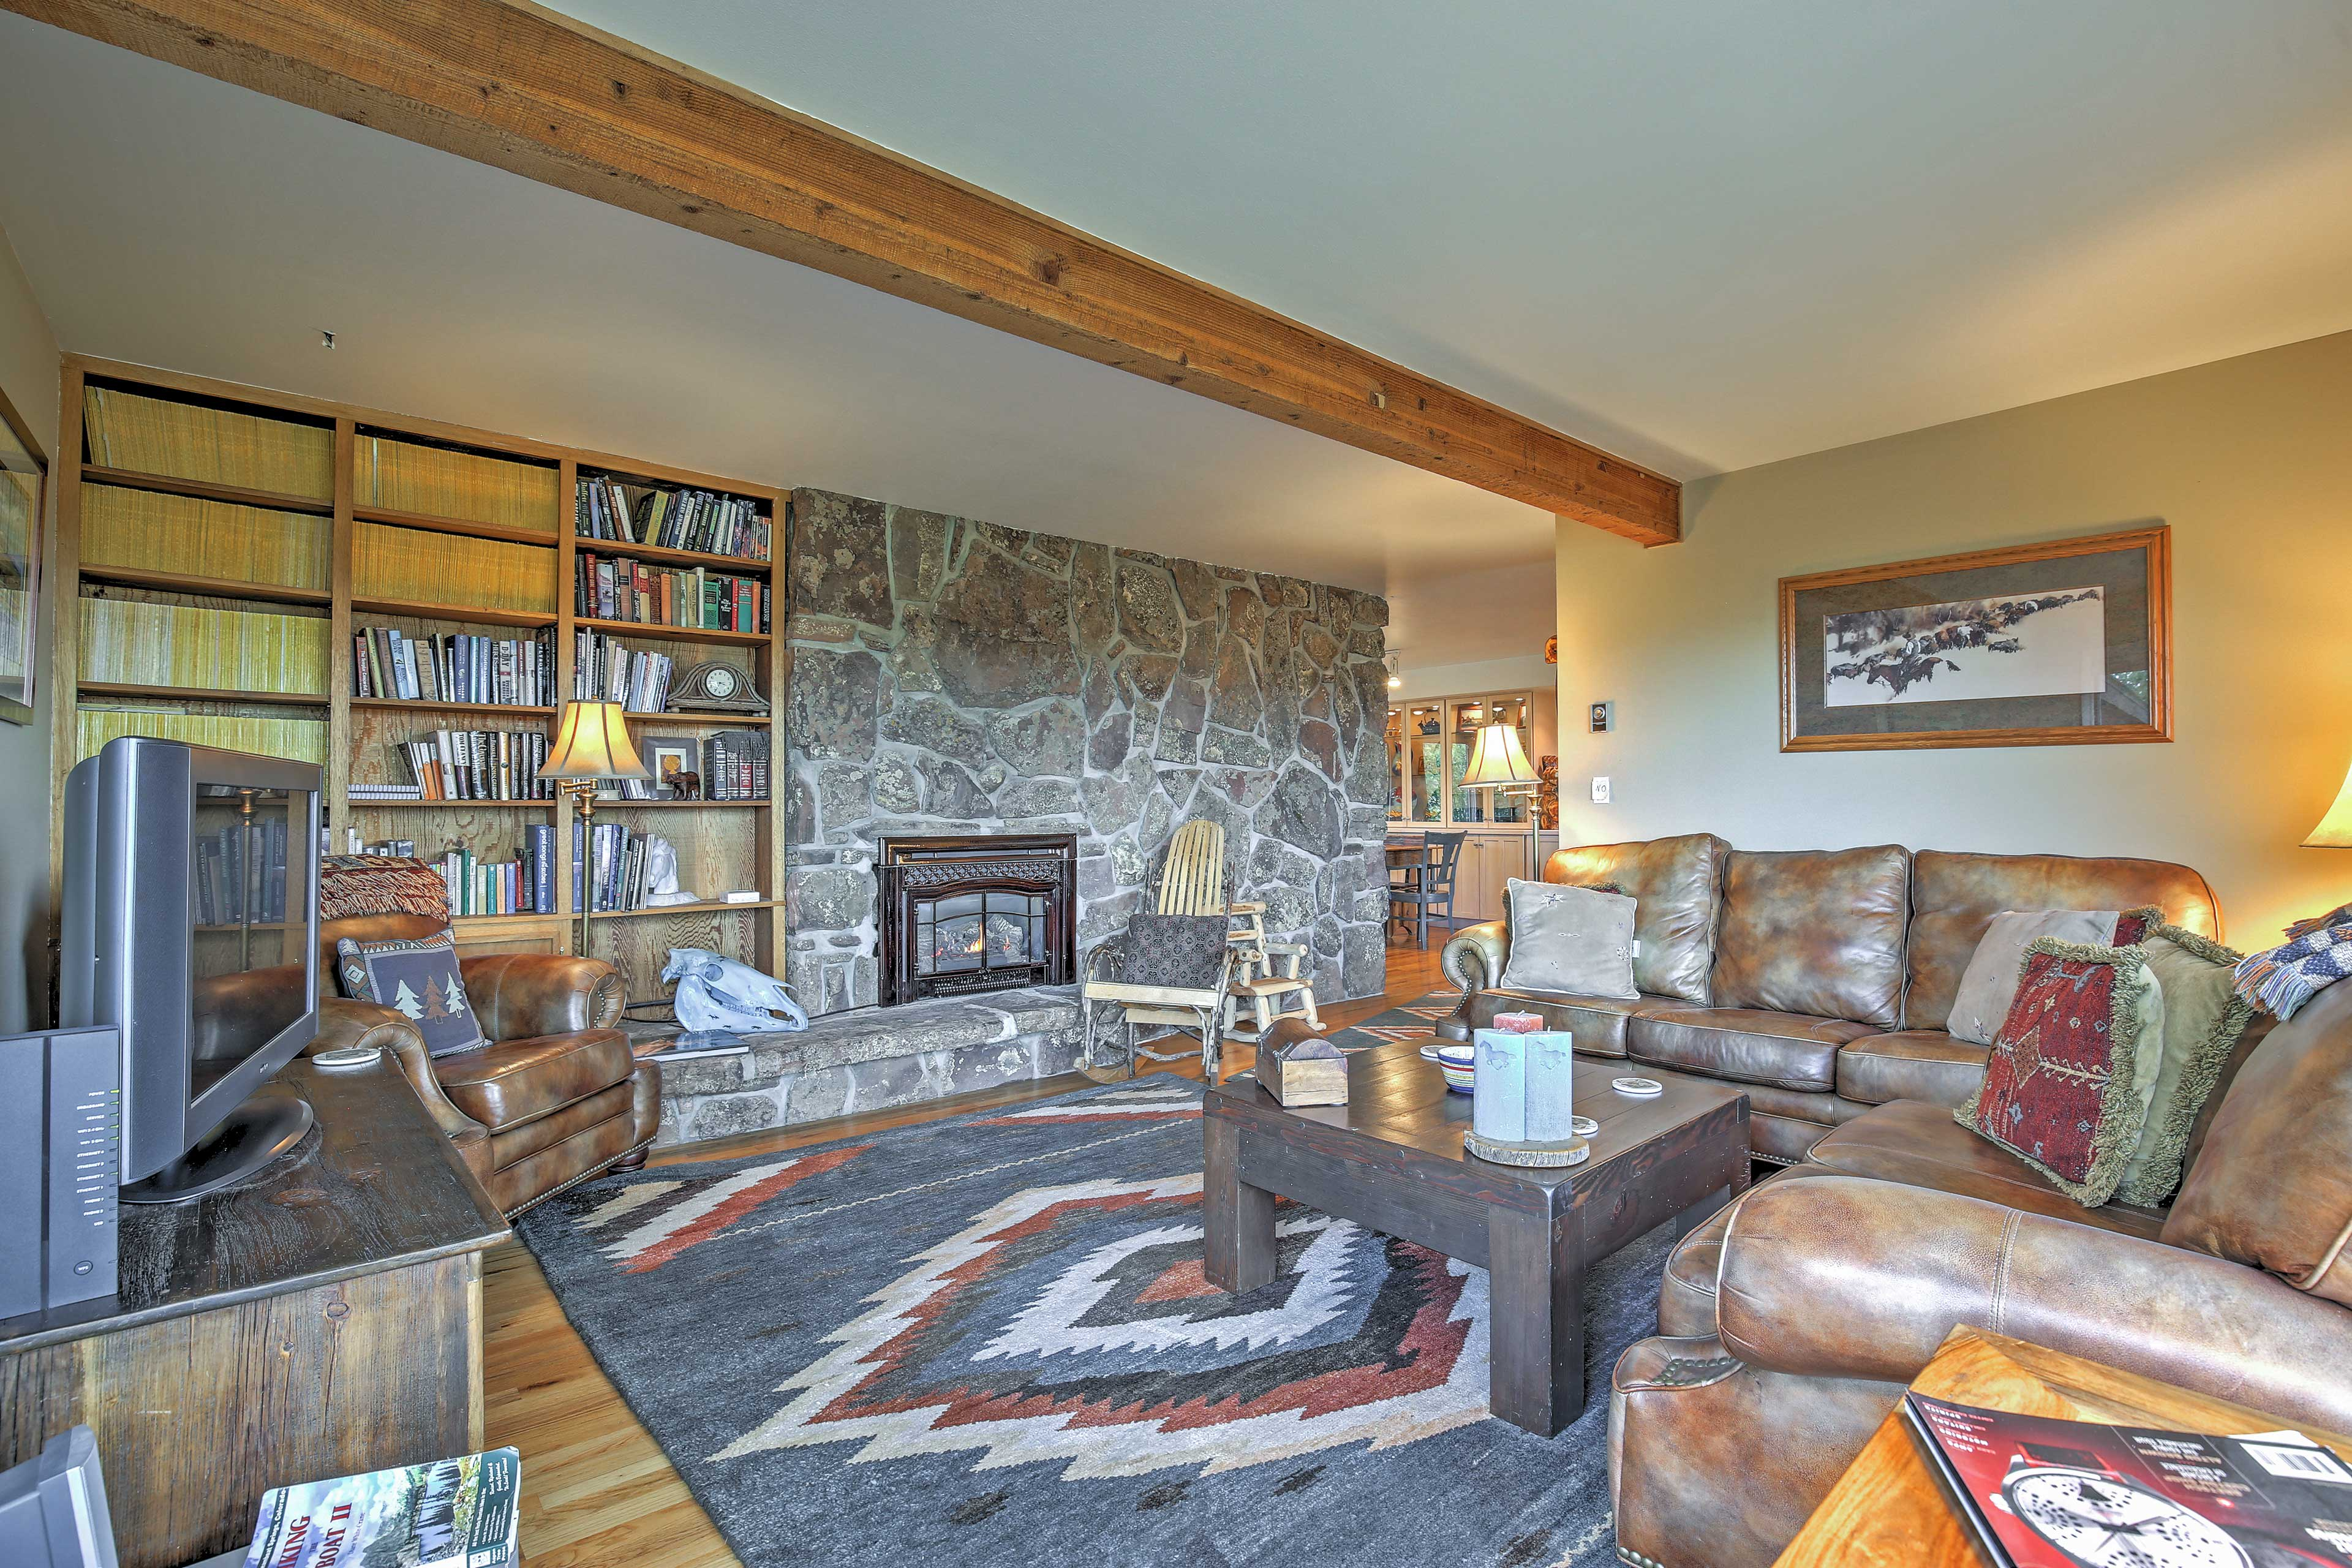 The living room features a flat-screen TV and fireplace.